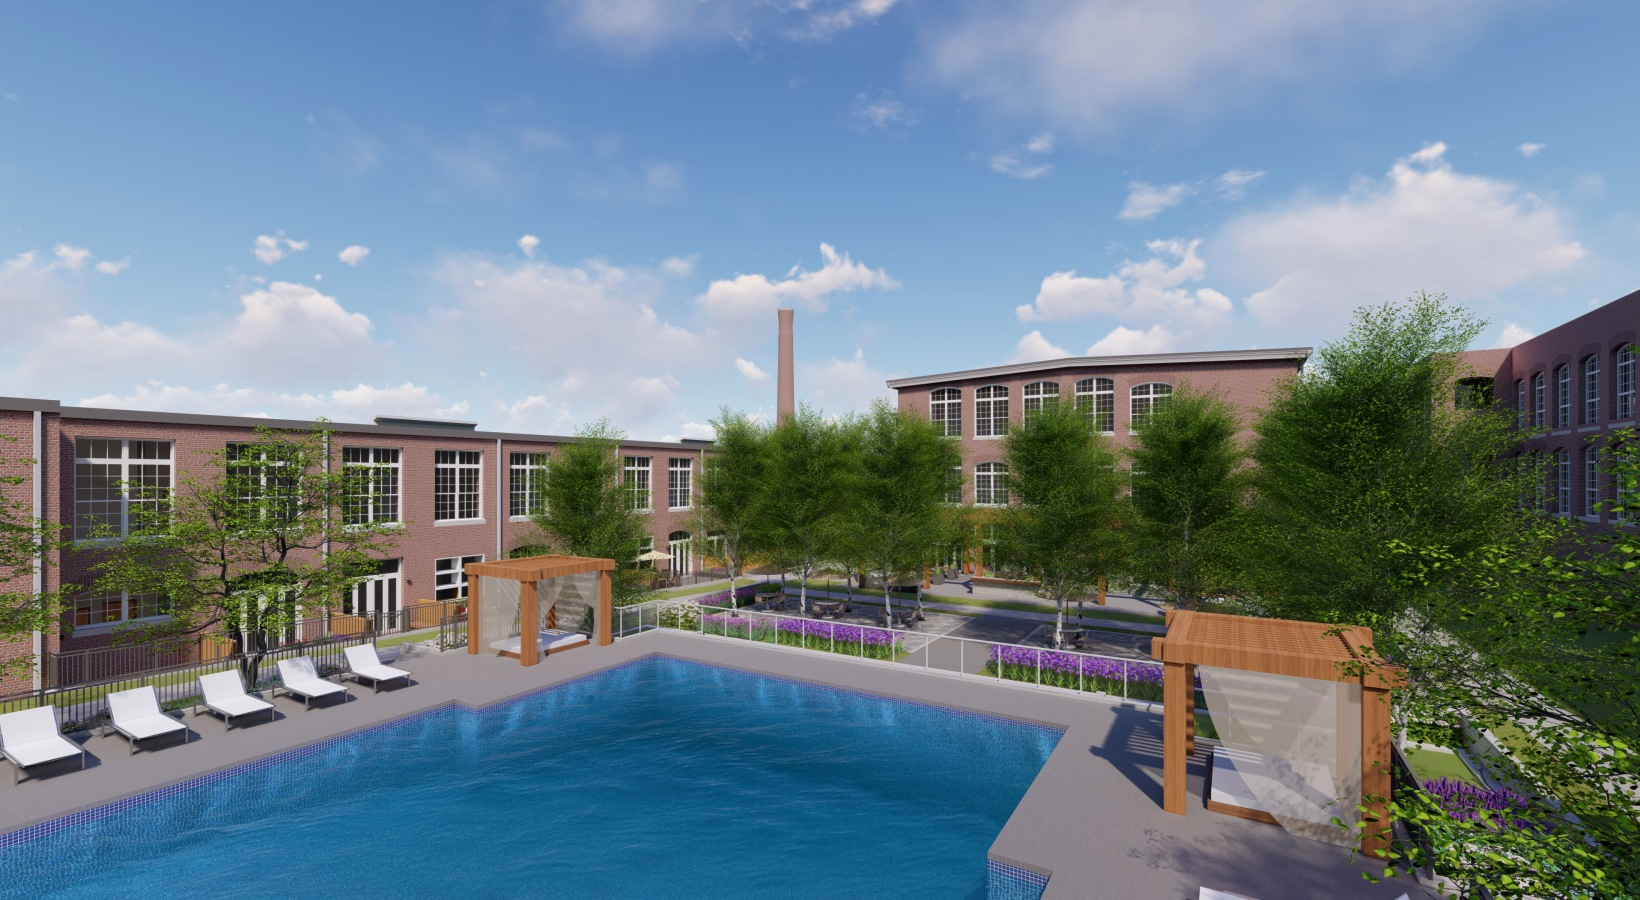 Brick mill in background with large pool and seating